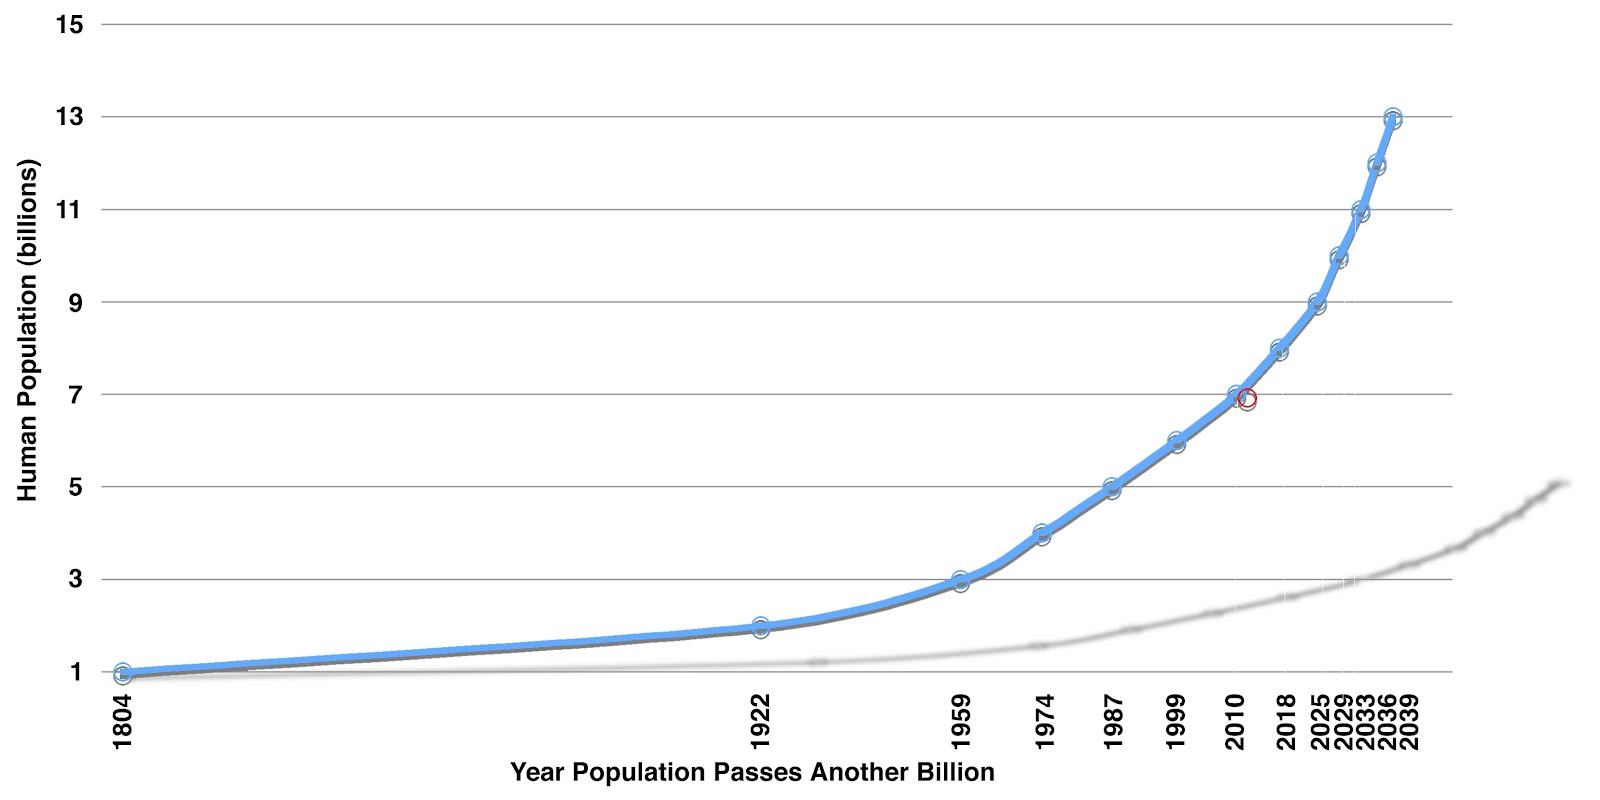 Human Population Growth - Graph shows Recent and Projected population growth Data